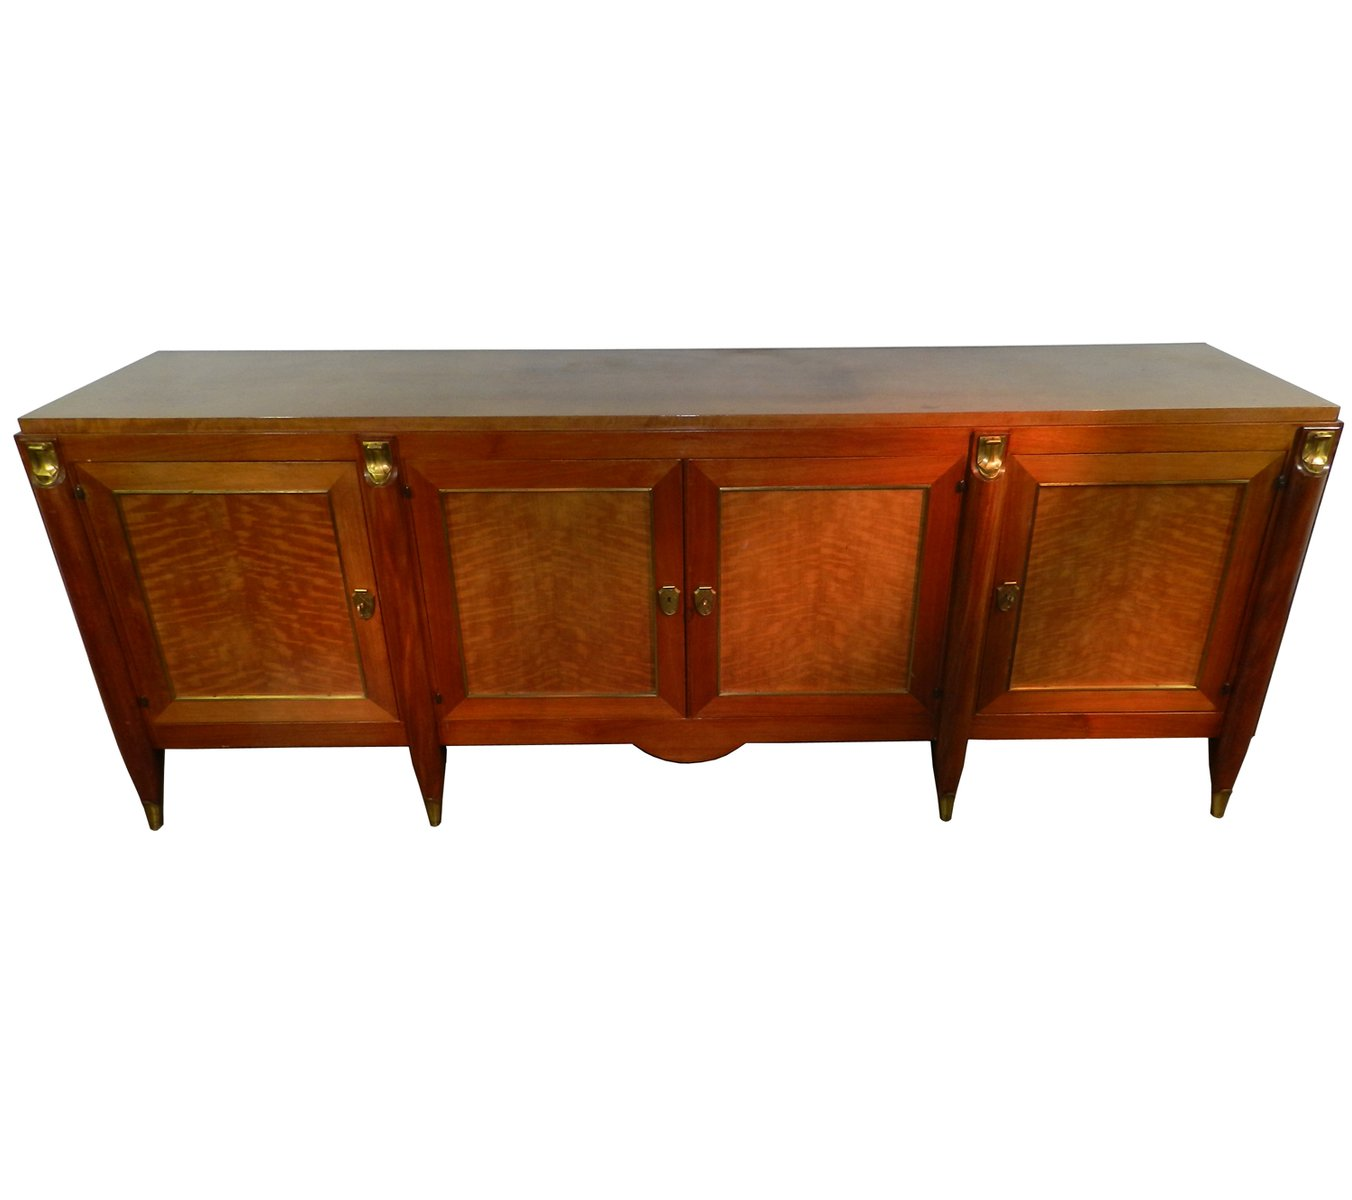 Art deco sideboard by maurice jallot for sale at pamono - Deko sideboard ...